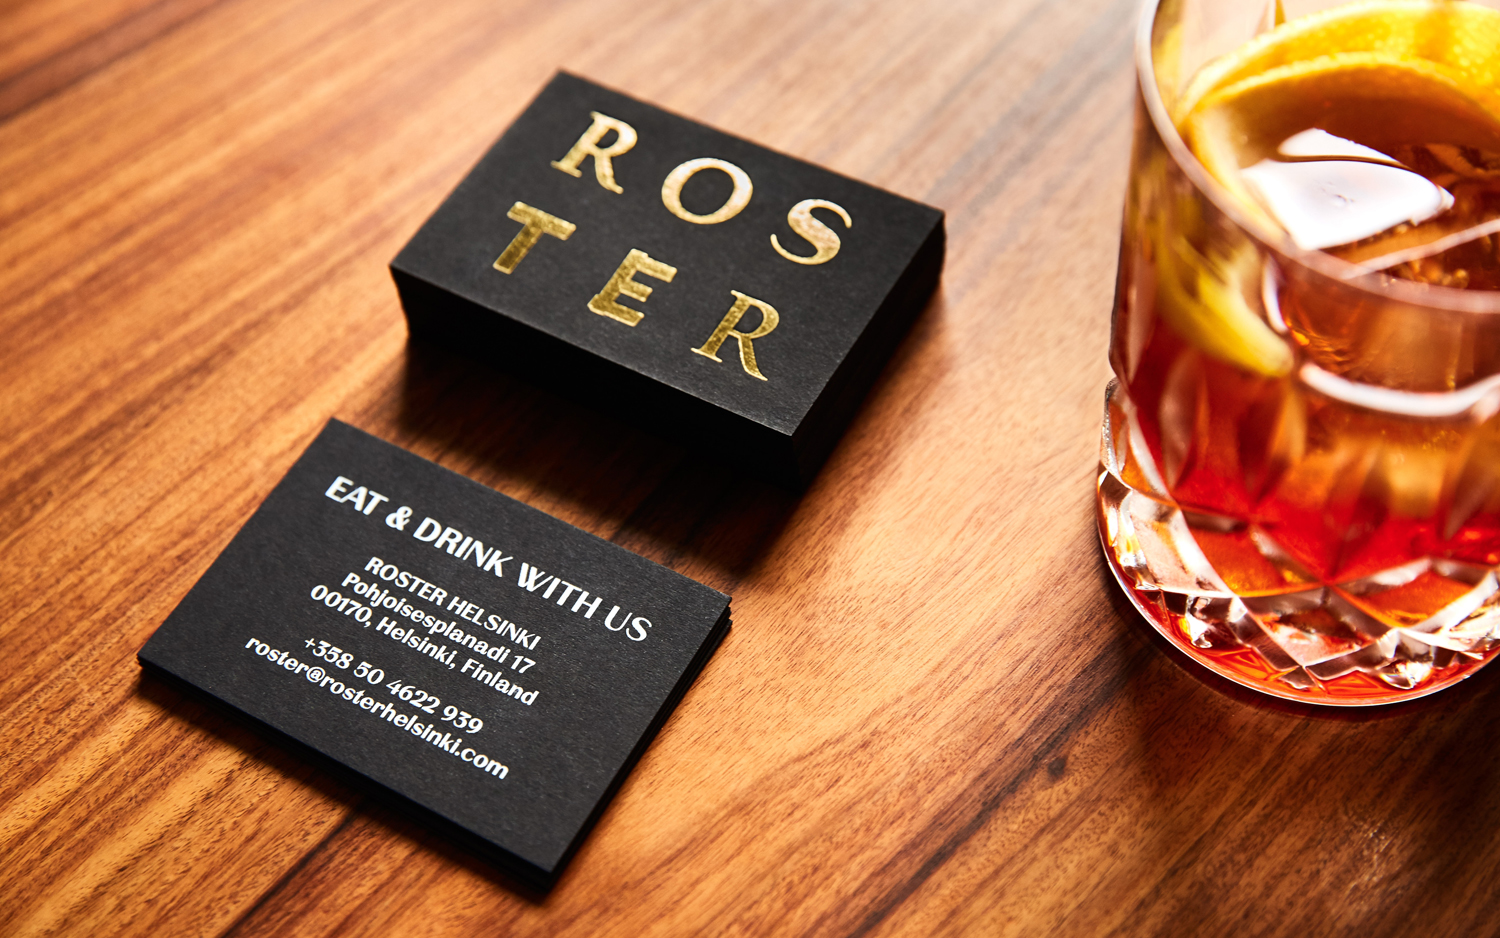 Logotype and gold foiled business cards by Bond for Helsinki bar and restaurant Roster